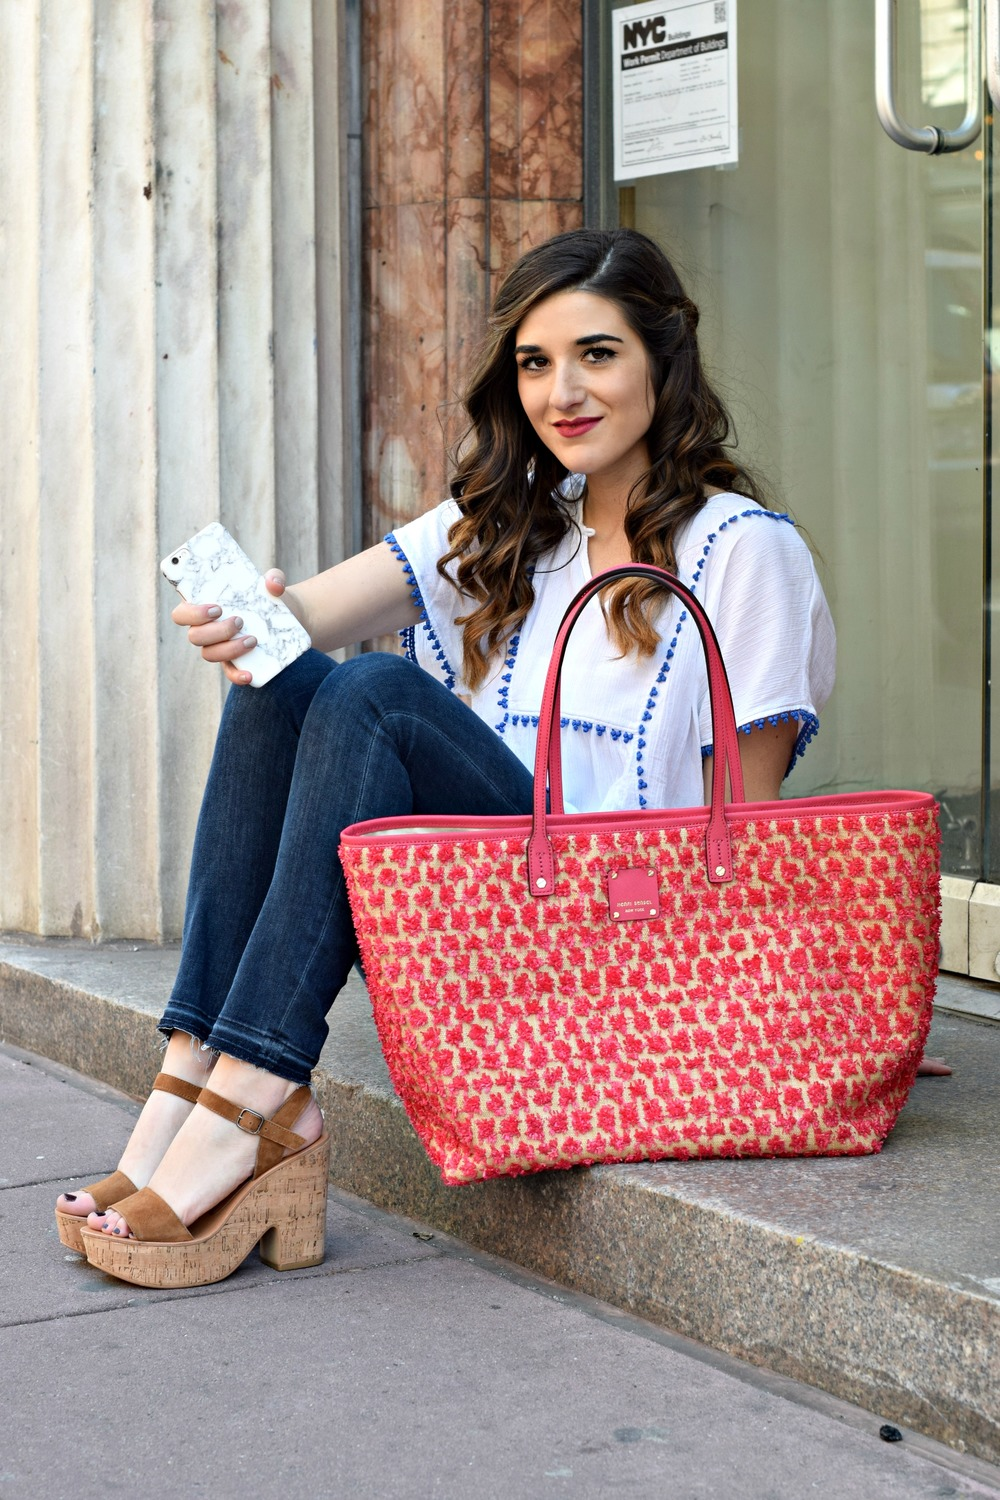 Marble iPhone Case Caseapp Louboutins & Love Fashion Blog Esther Santer NYC Street Style Blogger Product Review Model Girl Women Hair Choker Cold Shoulder Photography Photoshoot New York City Nails Phone Trendy Buy Shop Giveaway Discount Code Outdoors.jpg